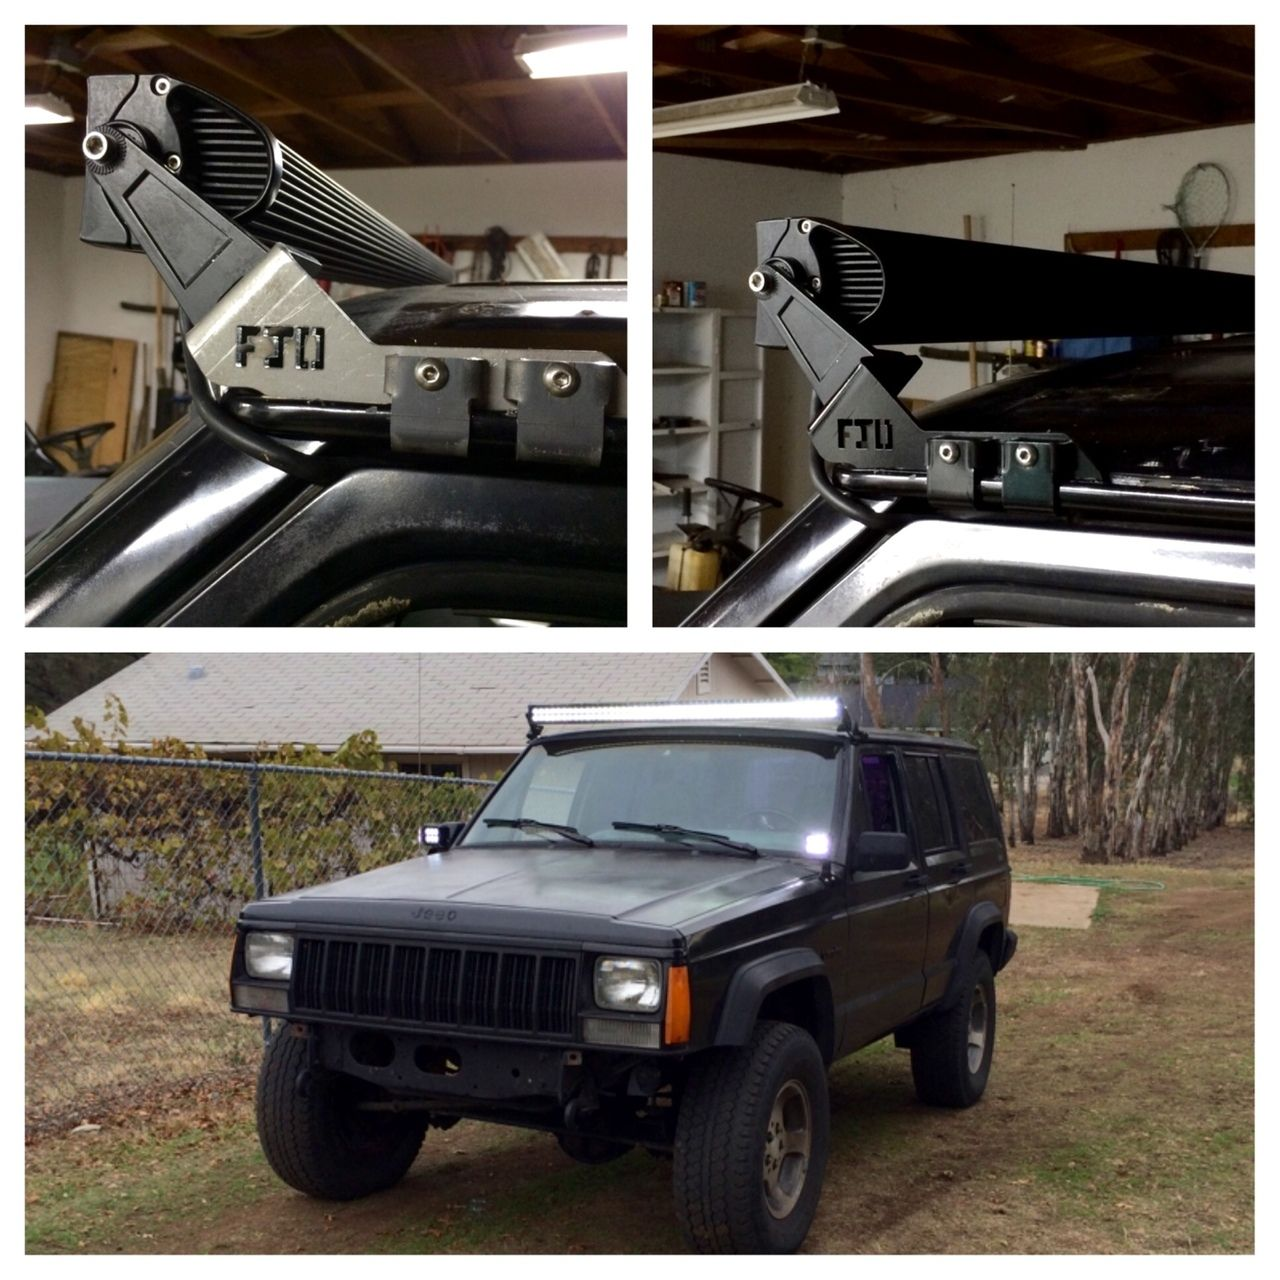 If you have an xj and want to mount a 50in light bar these are your if you have an xj and want to mount a 50in light bar these are your best bet price dropped to 50 for blackfriday farmer johnson off road 50in xj light aloadofball Gallery